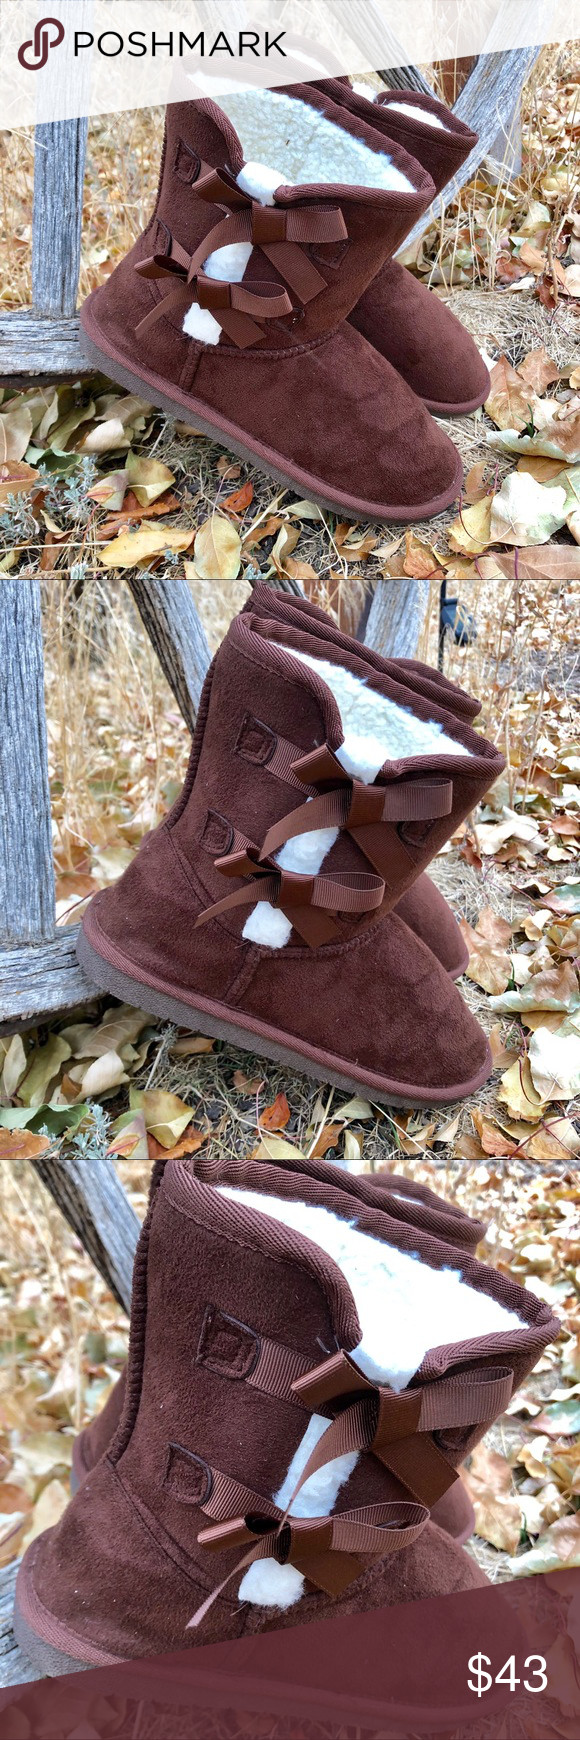 New! Brown and White Sherpa Boots With Ribbon Bows The go to cold weather Boot!!! Brown faux suede slip on Boot with Brown Ribbon Bows and White Sherpa lining  Perfect with oversized sweaters and leggings or skinny jeans and bomber jackets. Outfit choices are limitless for the easy on/off boots. They'll even make you pajamas look cuter ❤️ New In Box True to size  Shipped straight from our BOUTIQUE  NO RETURNS PLEASE REFER TO POSHMARK RULES  ☮️❤️